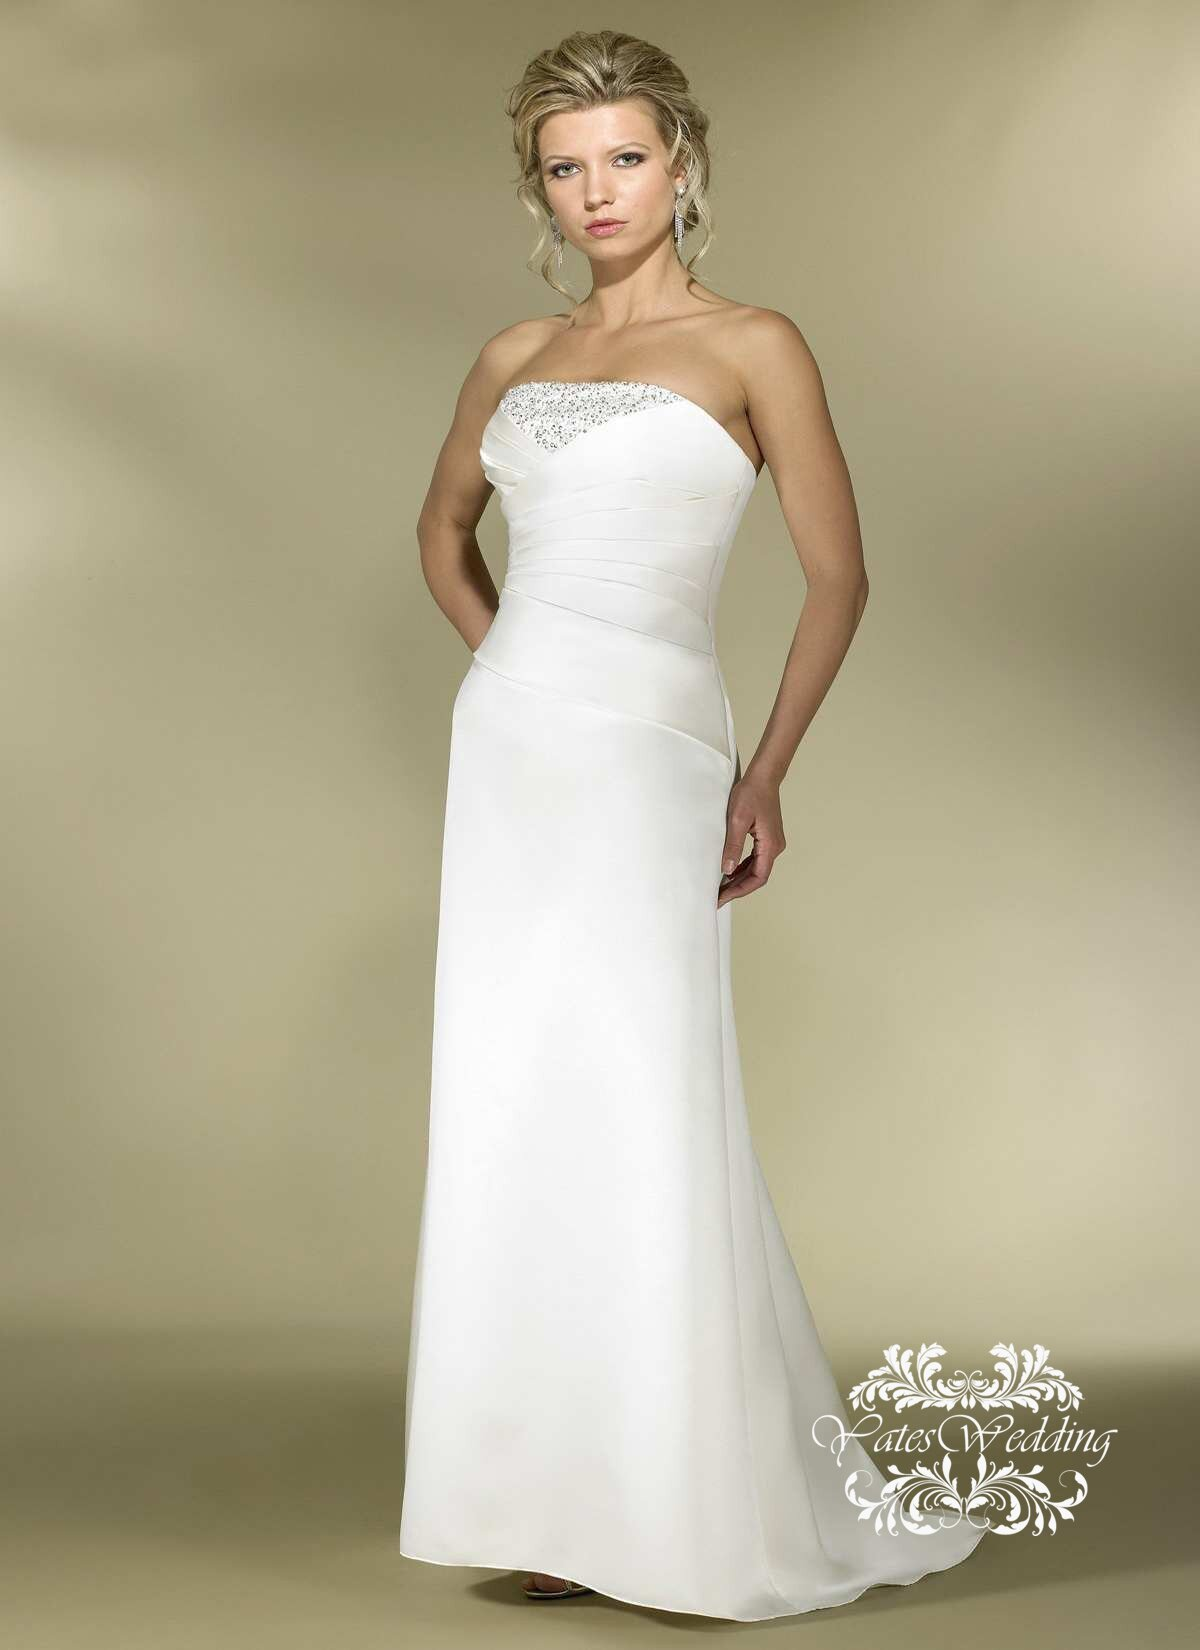 Jcpenney archives stylish wedding dresses for Jcpenney dresses for weddings